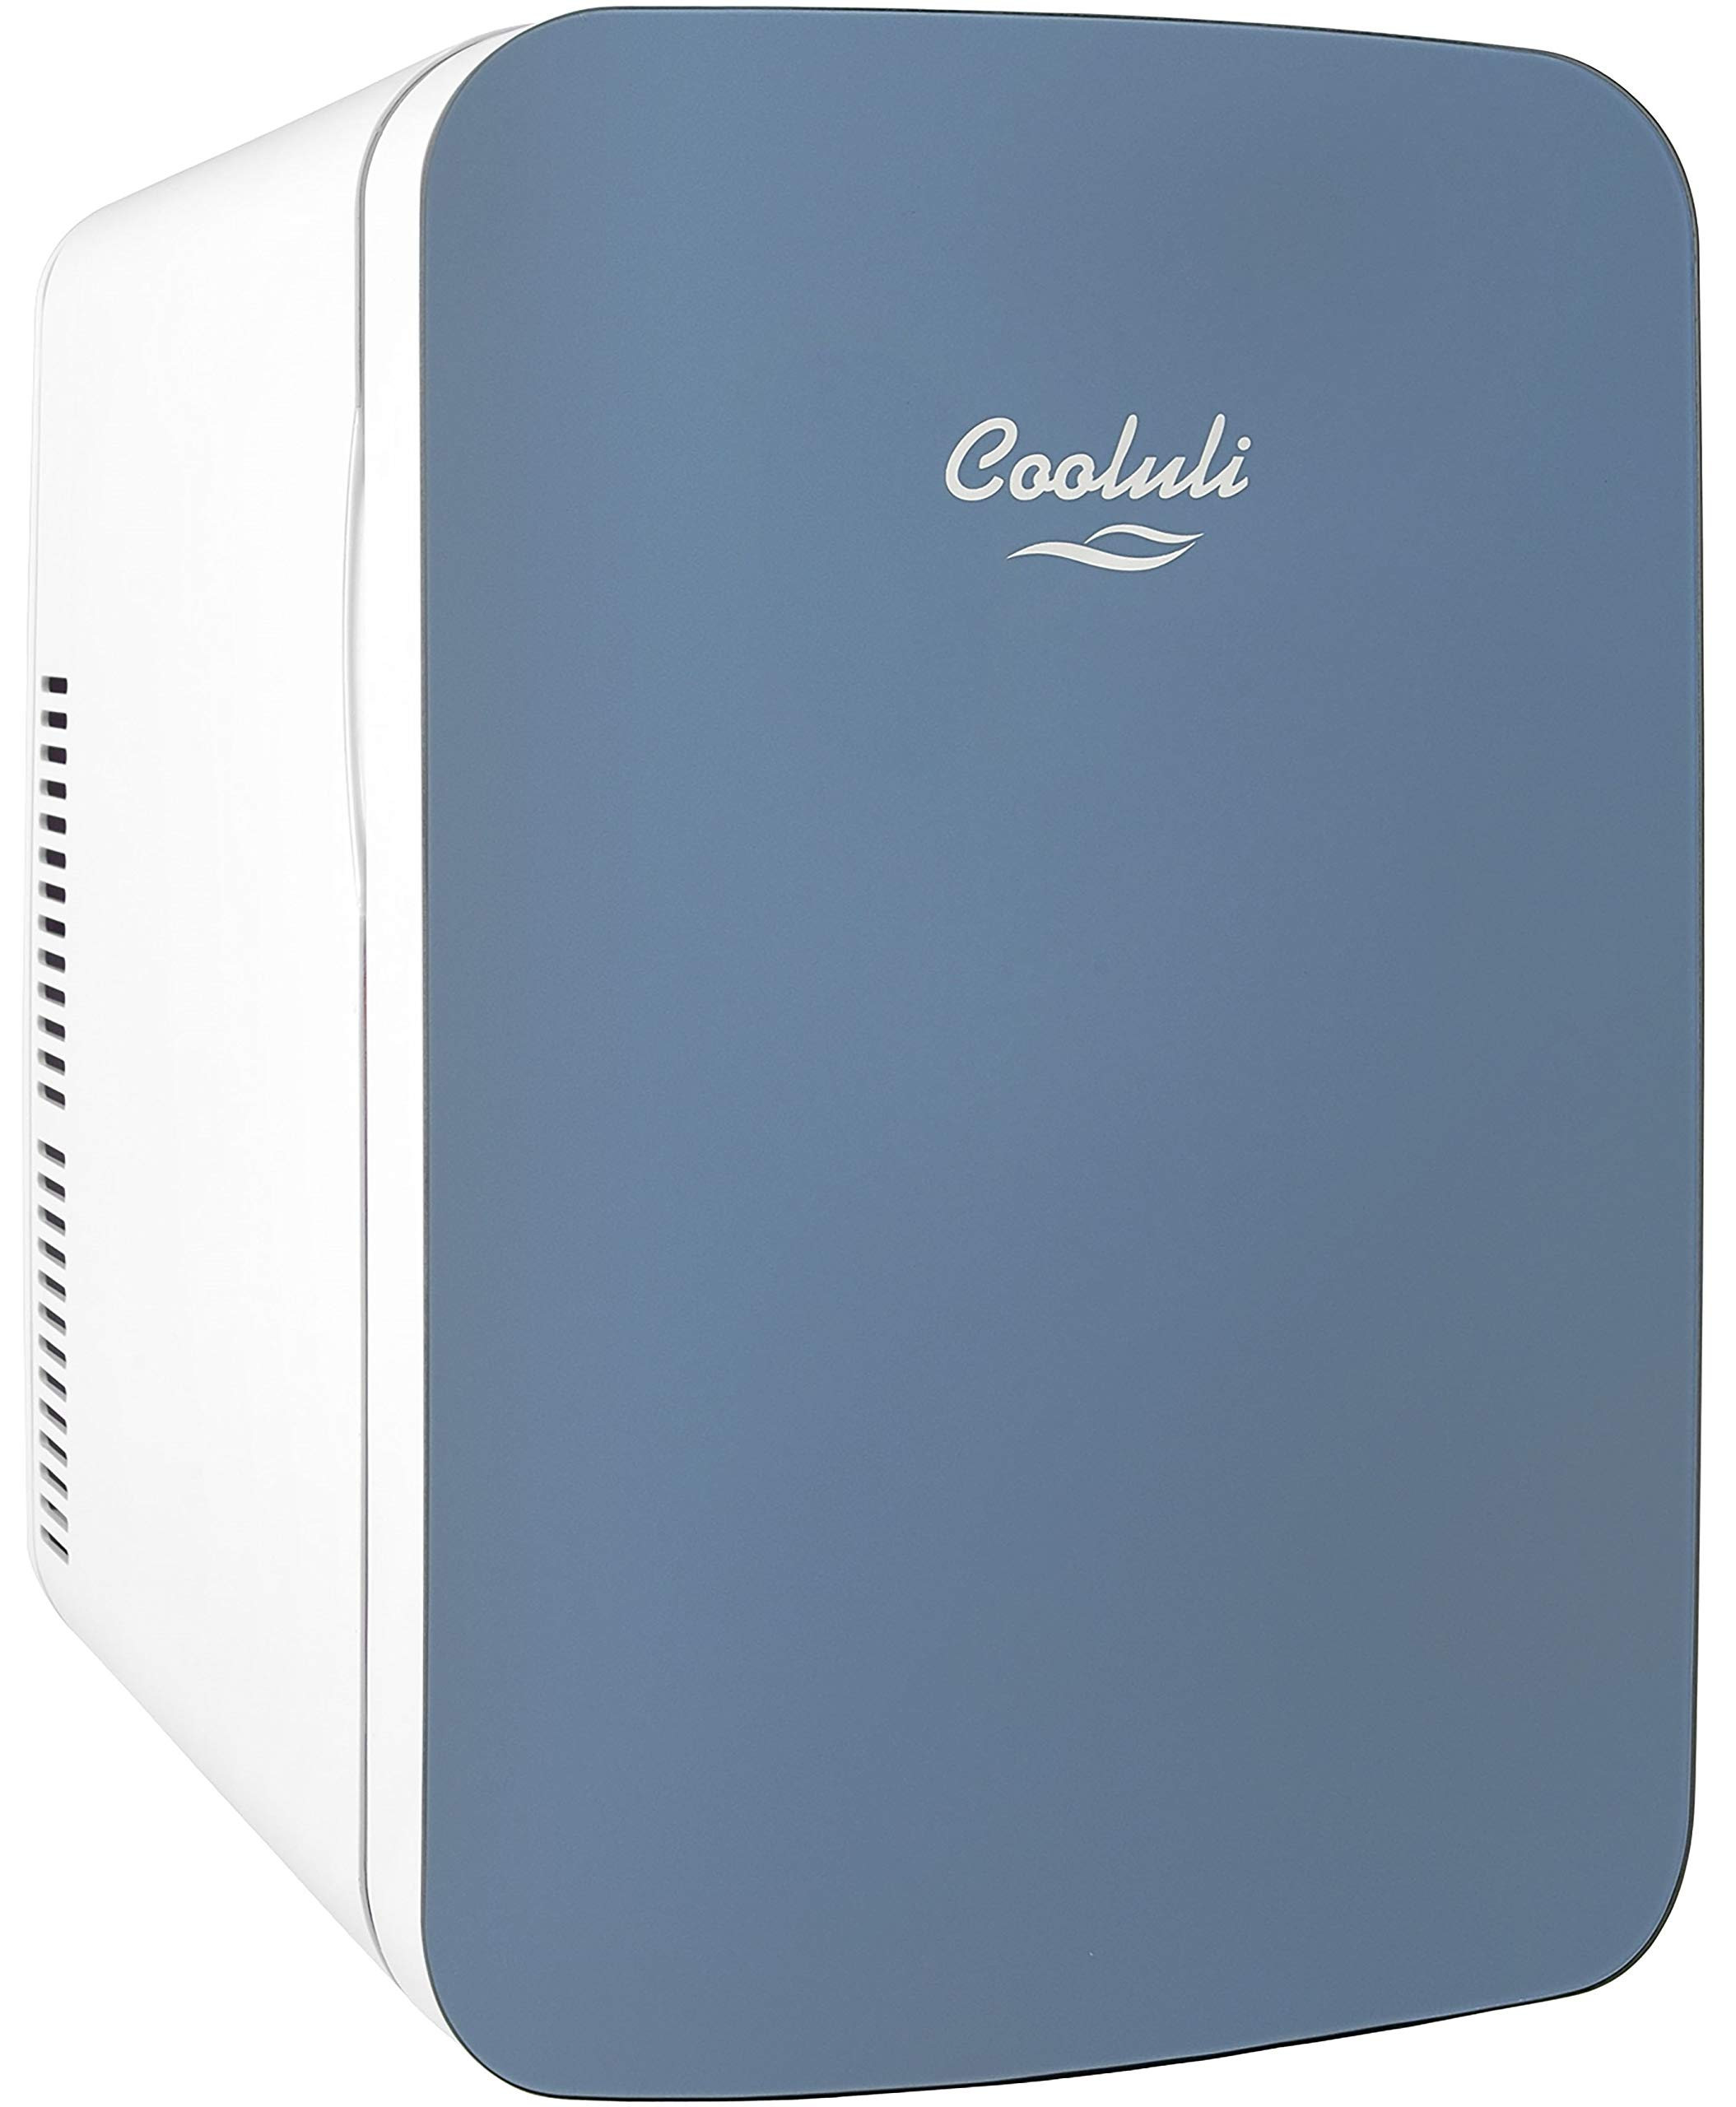 Cooluli Infinity 15-liter Compact Cooler/Warmer Mini Fridge for Cars, Road Trips, Homes, Offices, and Dorms (Blue)